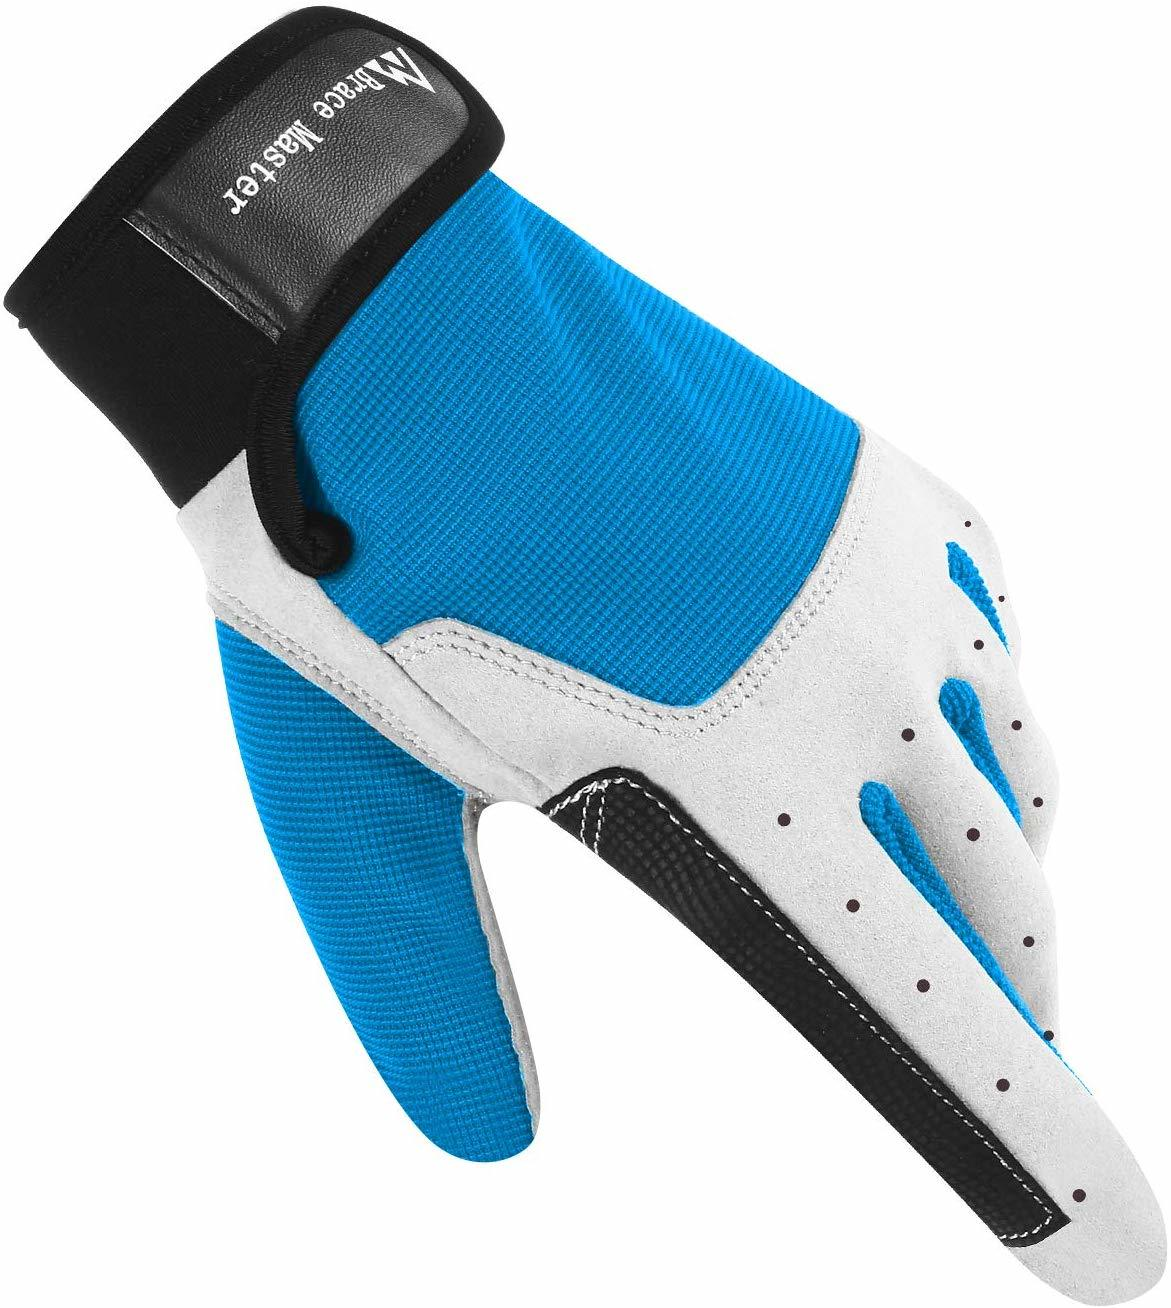 10 Sailing Gloves that will Protect Your Hands While Doing Water Sports 7